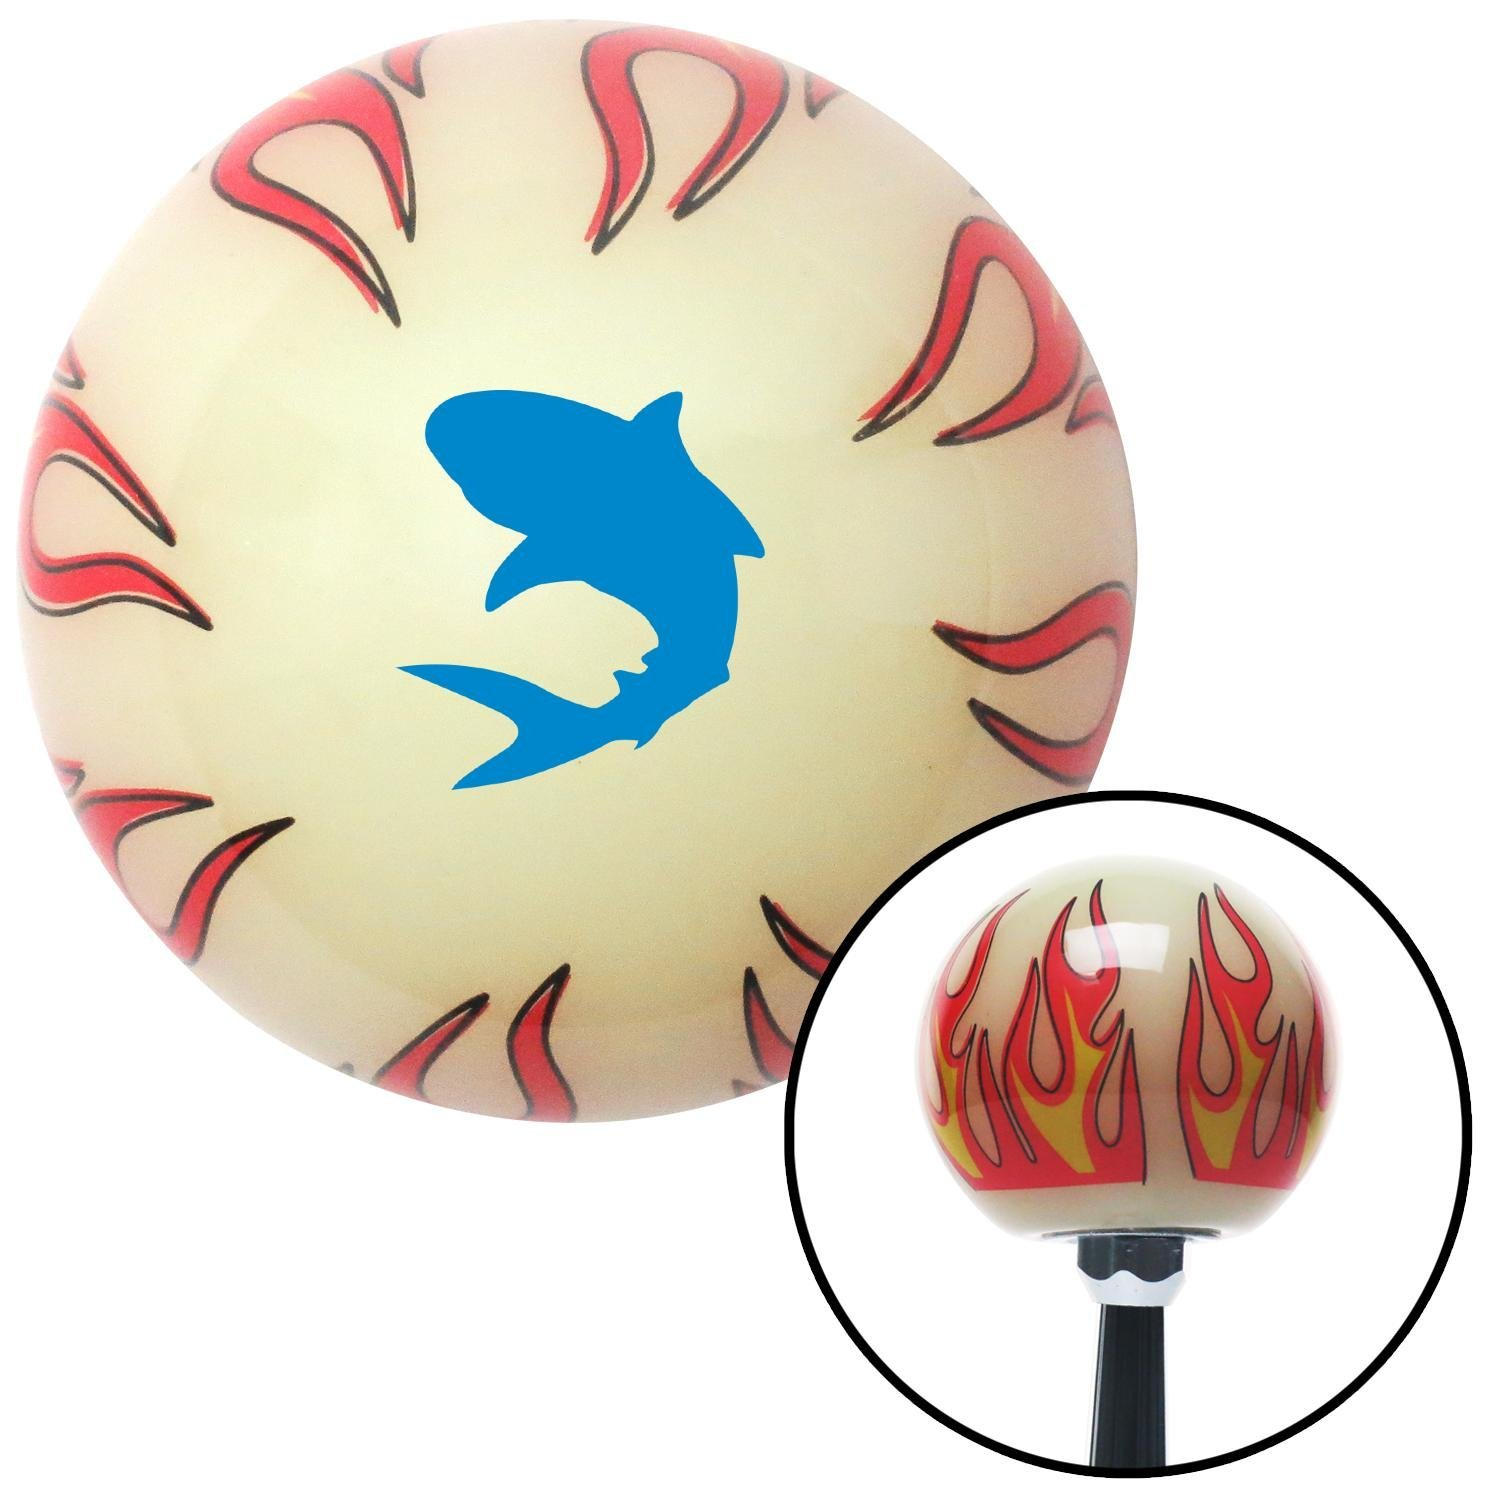 American Shifter 292773 Shift Knob Blue Shark Ivory Flame with M16 x 1.5 Insert